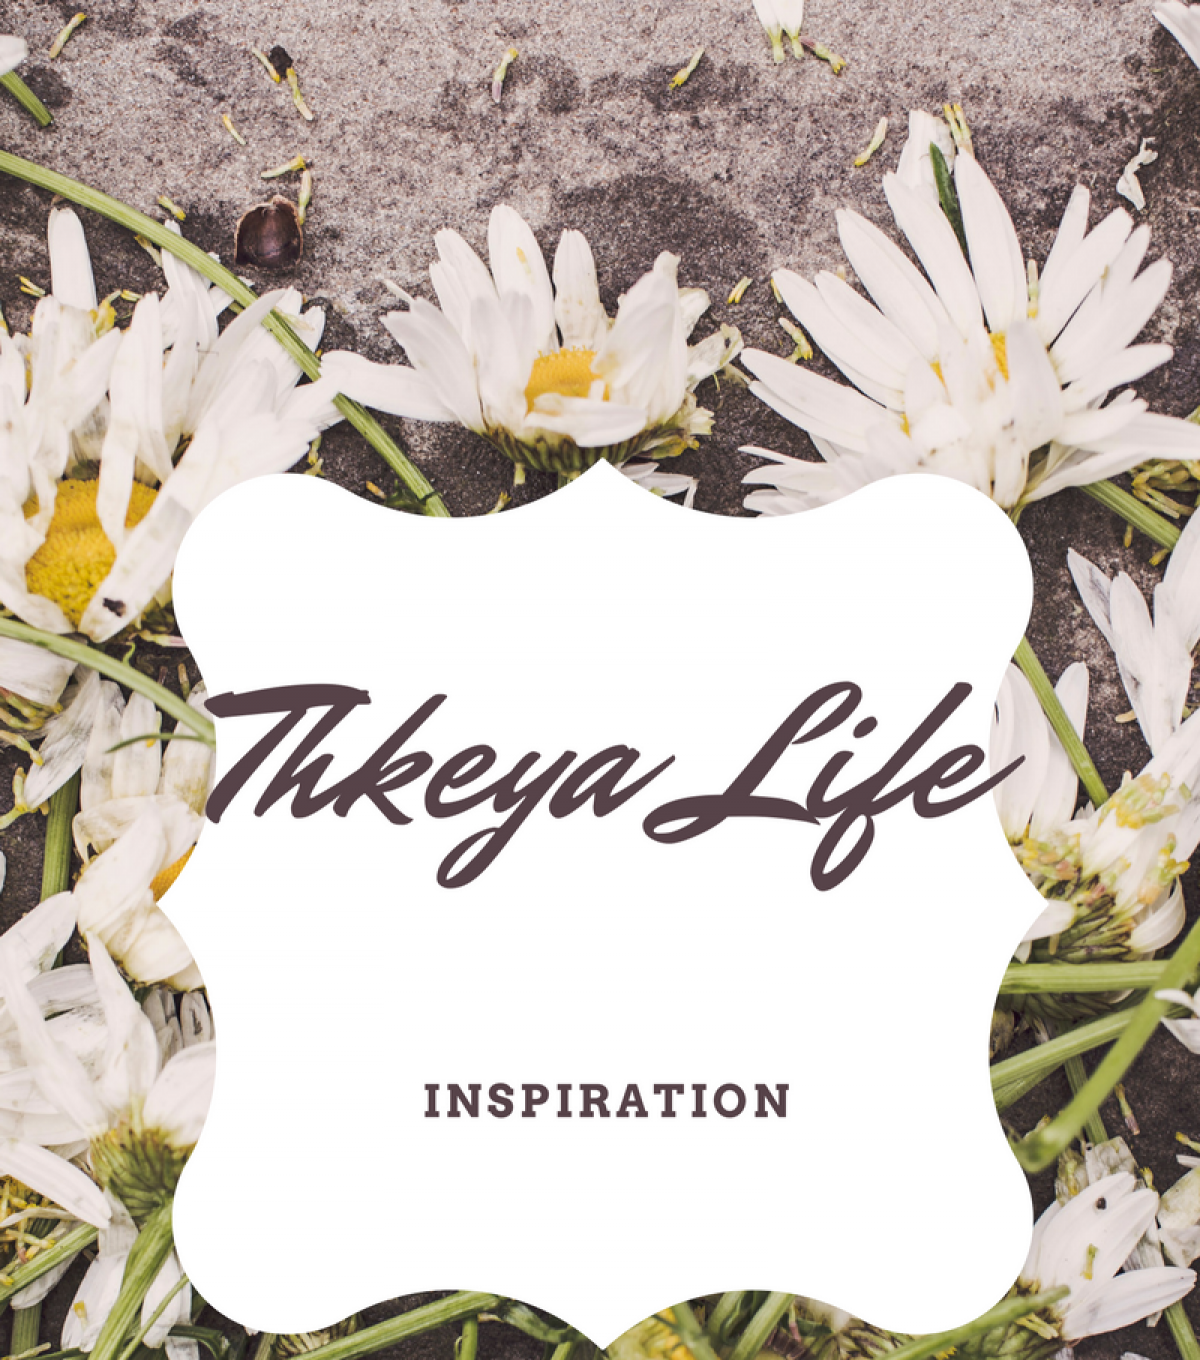 Thkeya's Reflections on Life